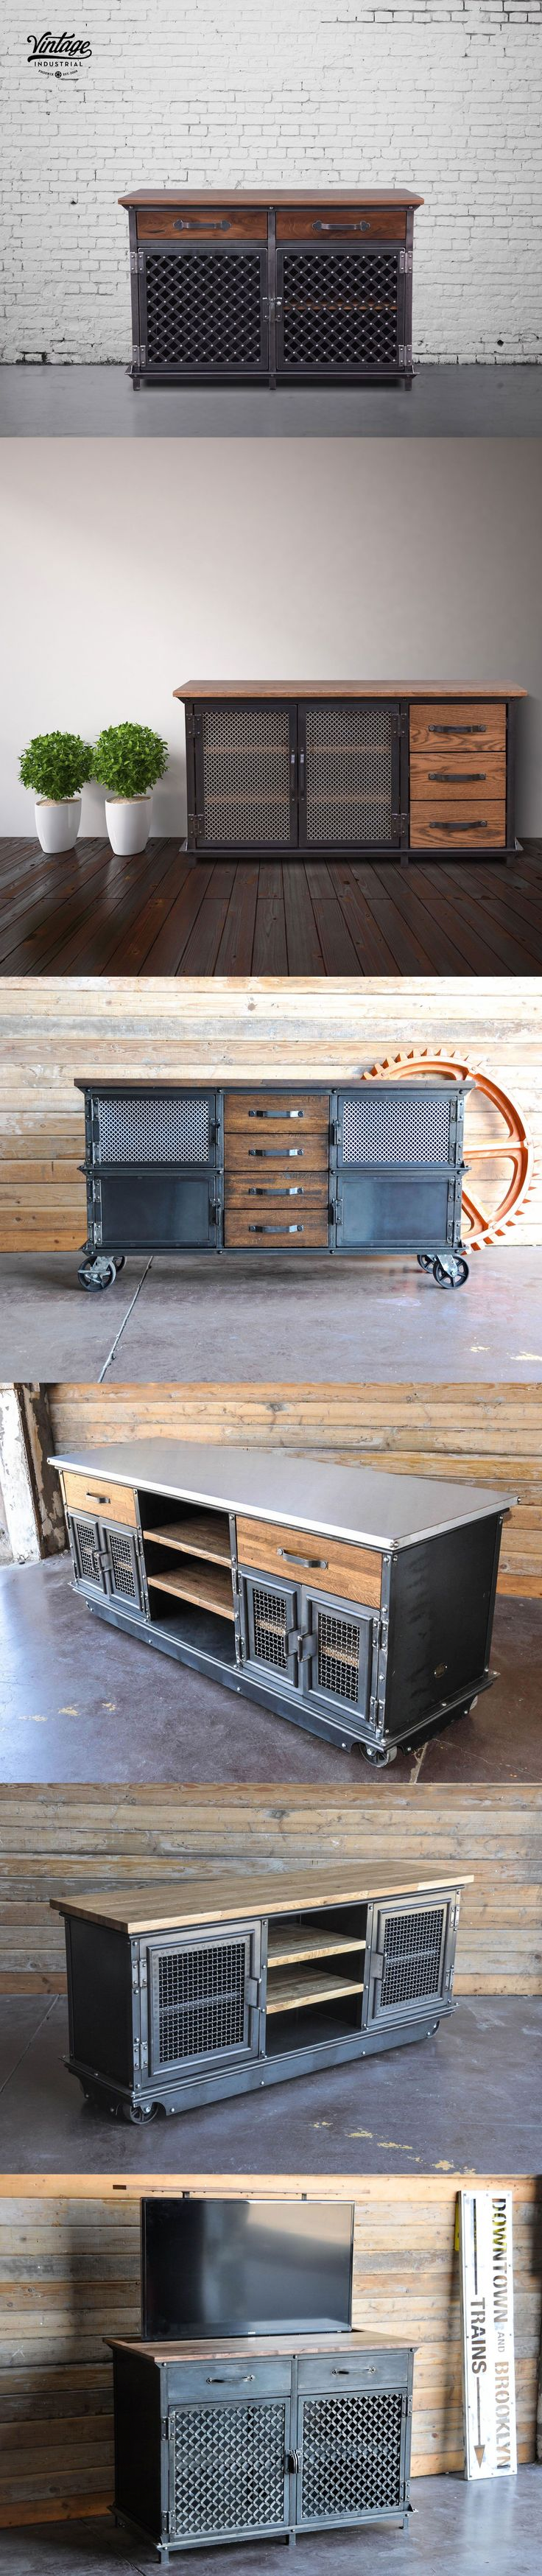 Post industrial conference table vintage industrial furniture - Console Tables Built By Vintage Industrial In Phoenix We Make Them From Scratch And Can